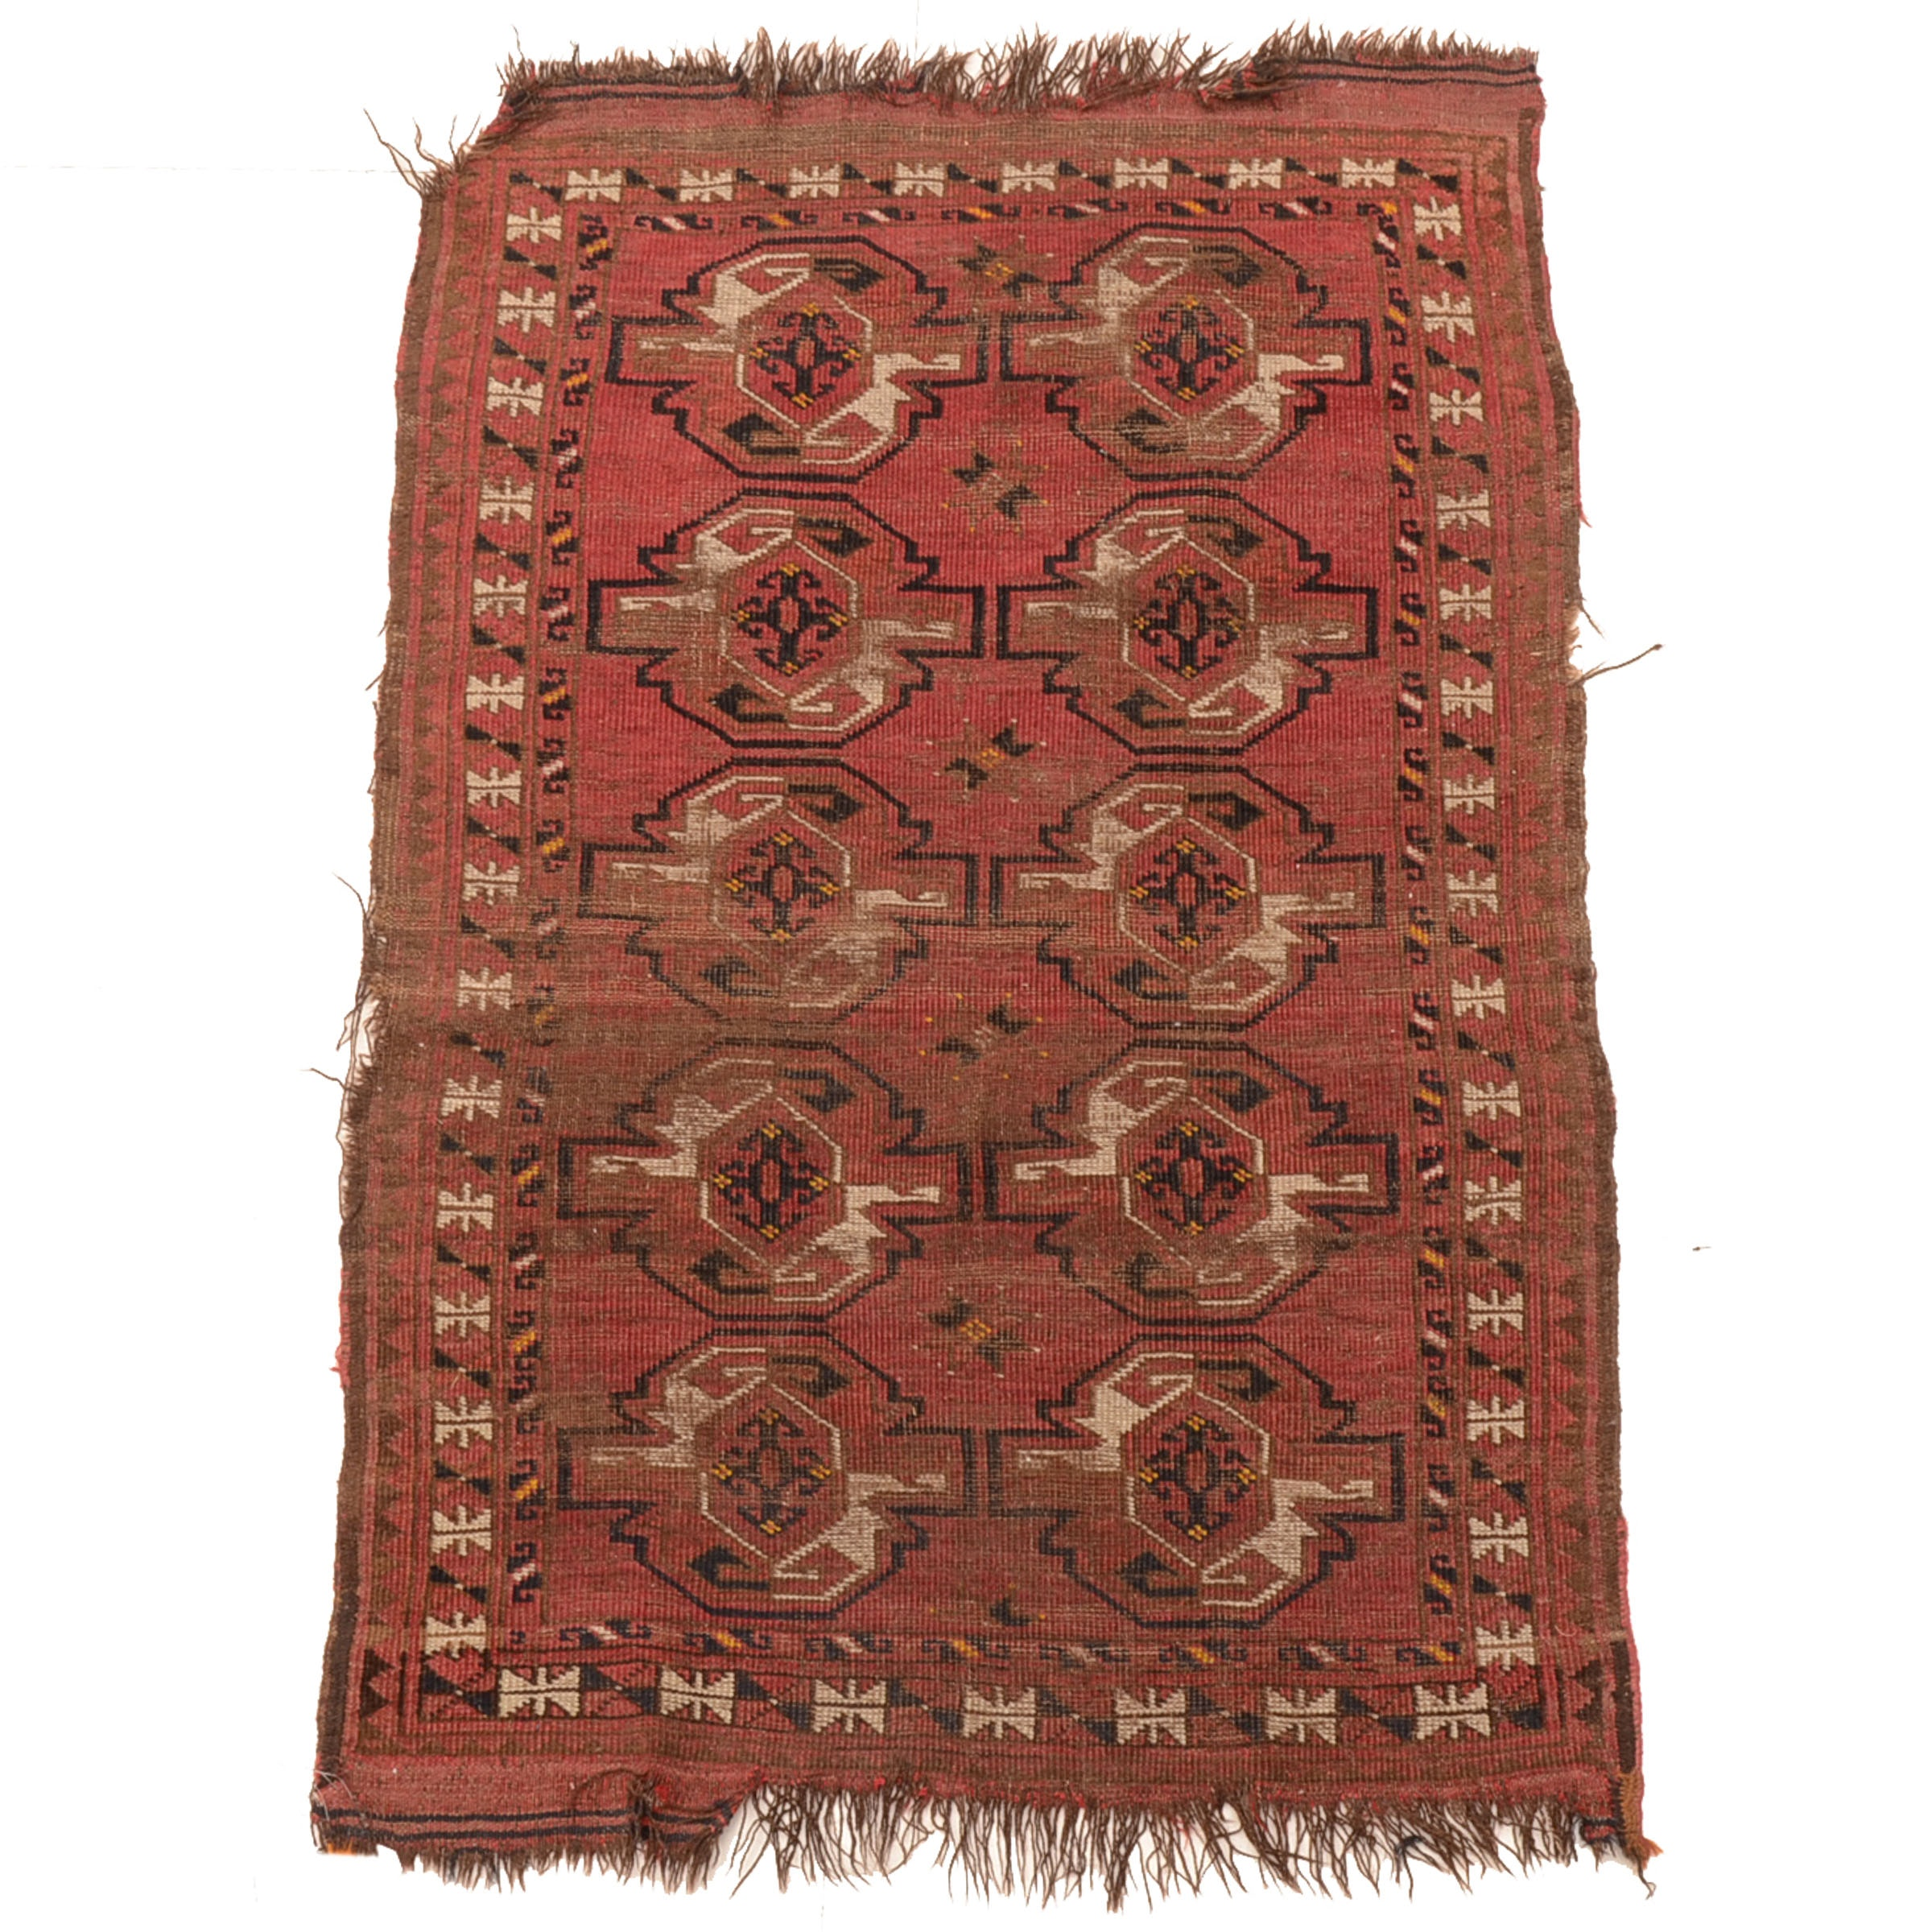 Vintage Hand-Knotted Turkmen Bokhara Wool Accent Rug